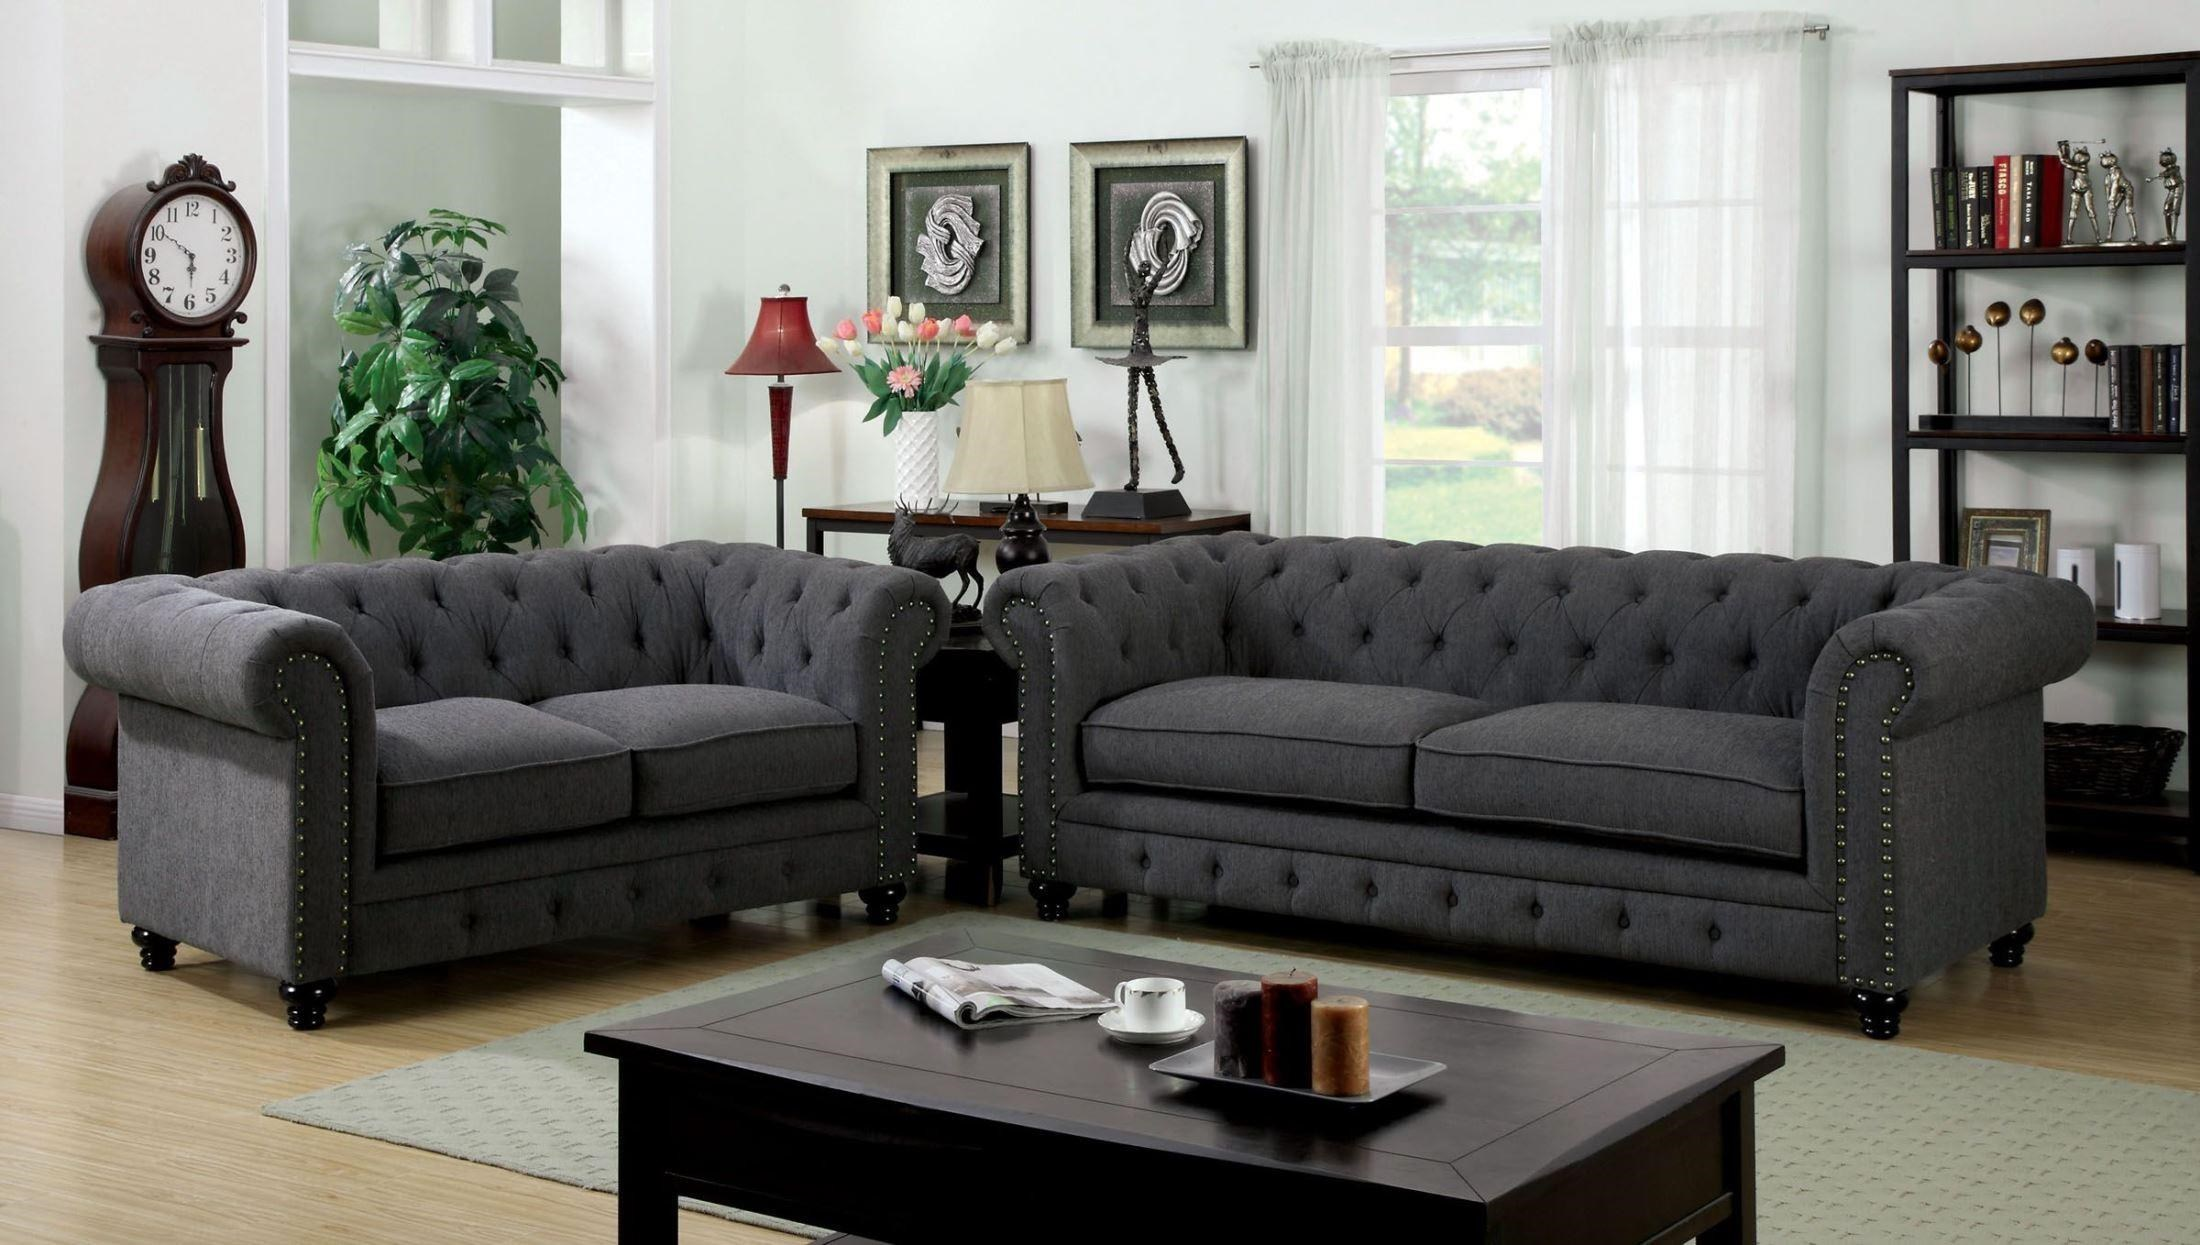 Furniture of America / Import Direct Stanford Sofa & Love Seat - Item Number: CM6269SF+CM6269LV